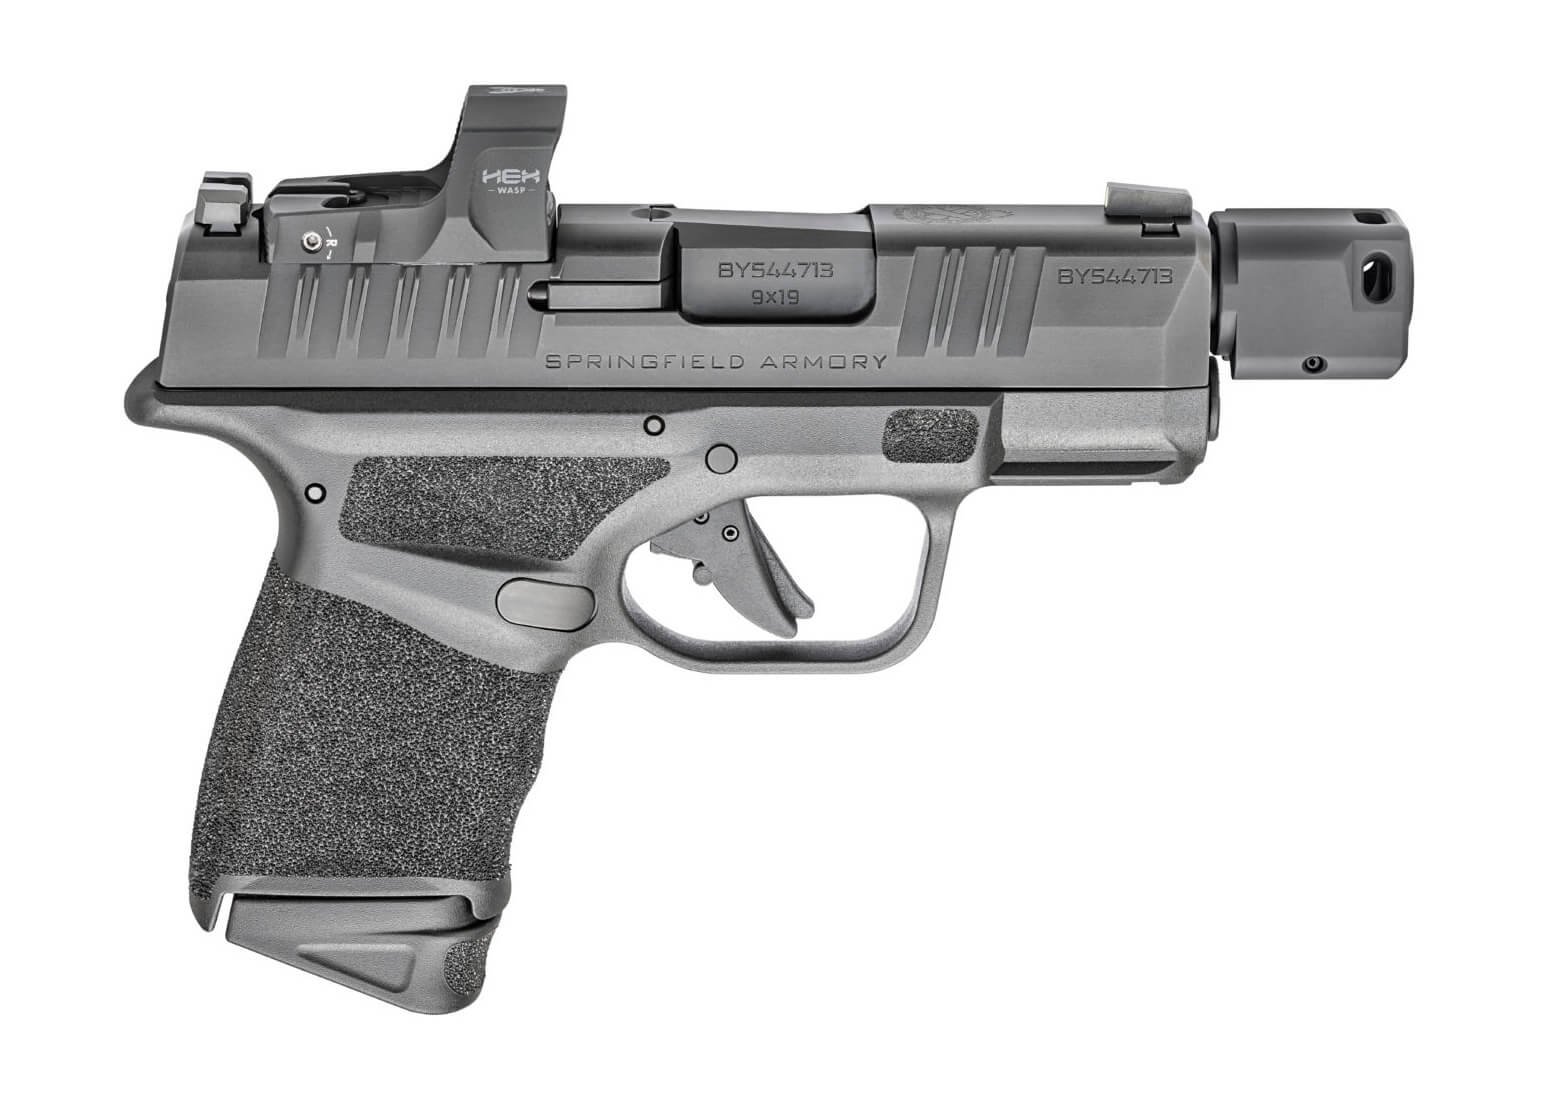 Right side view of the Springfield Armory Hellcat RDP pistols